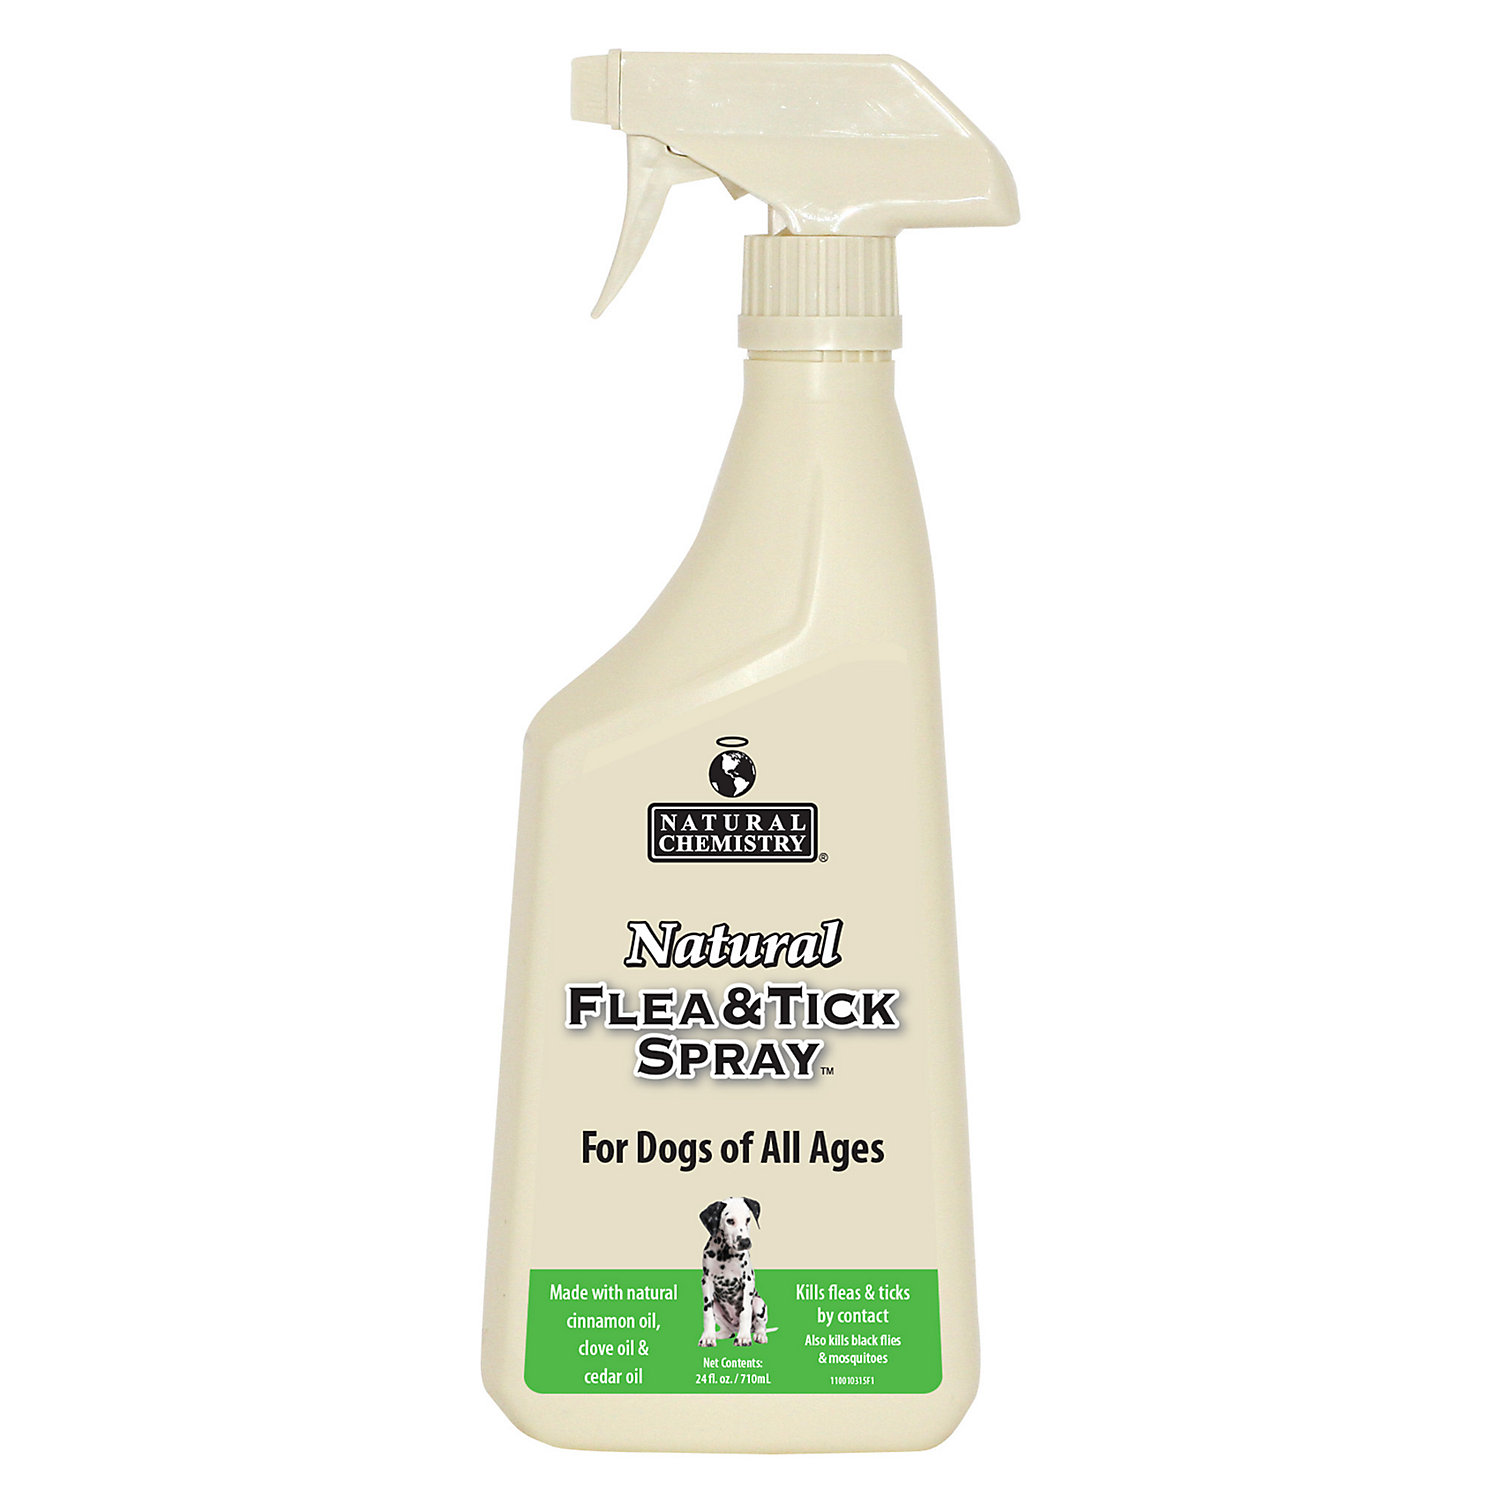 Image of Natural Chemistry Dog Flea & Tick Spray